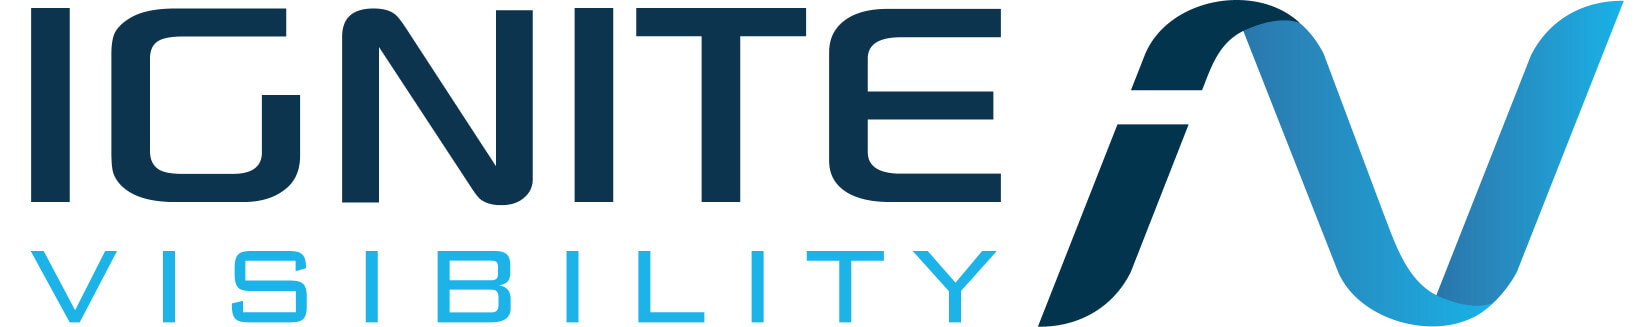 Top Online Marketing Agency Logo: Ignite Visibility